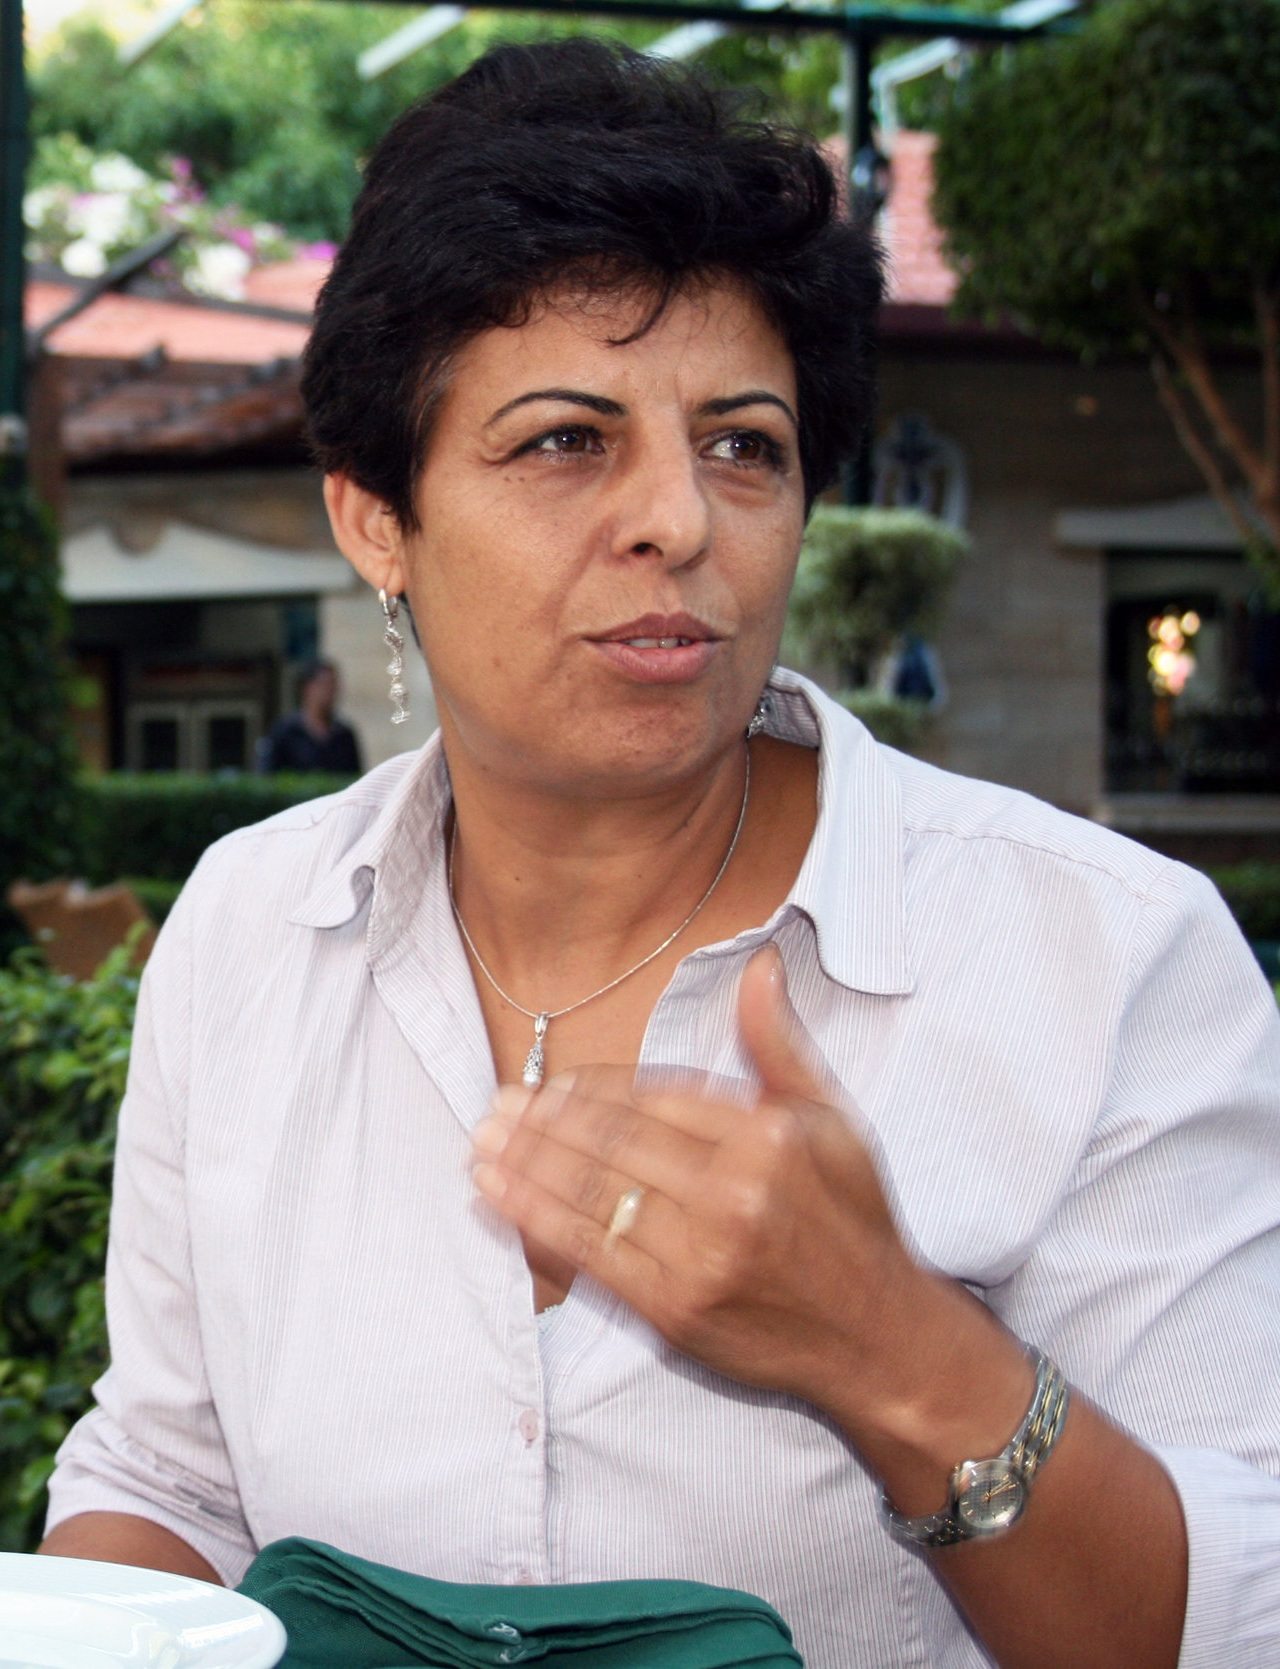 Activist Naila Ayesh, the central figure in  Naila and the Uprising.